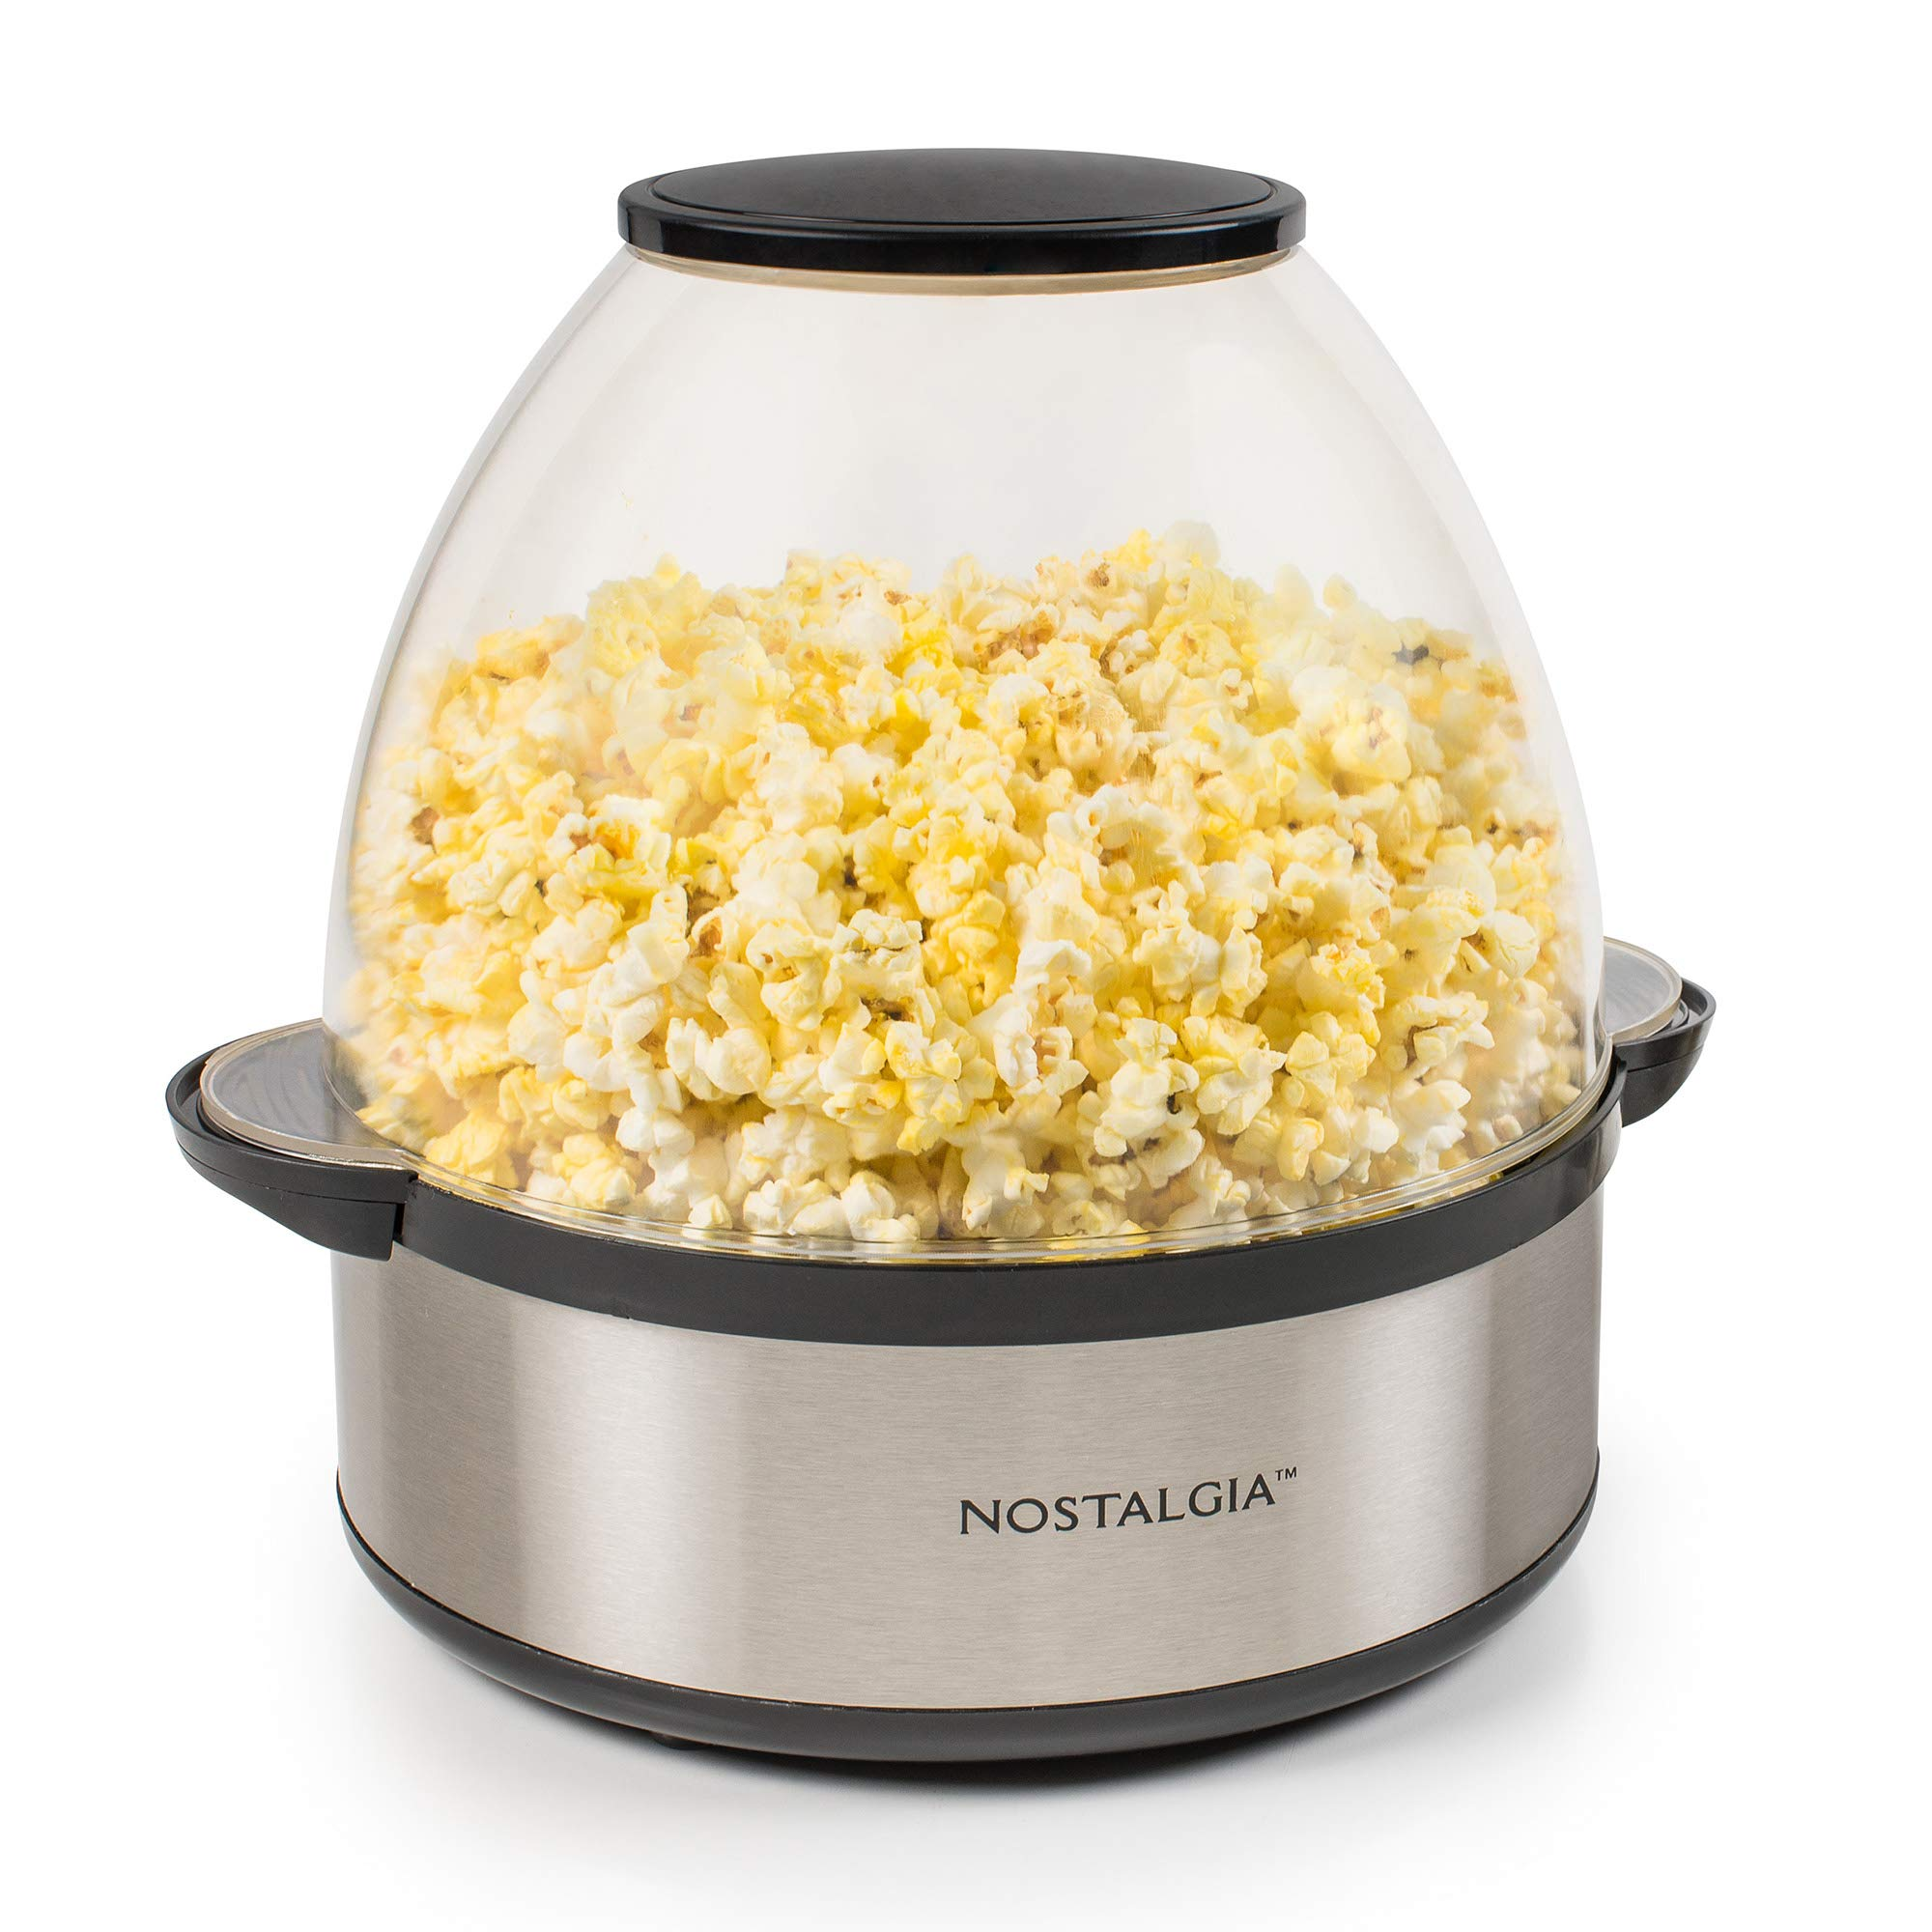 Nostalgia SP660SS 6-Quart Stirring Popcorn Popper With Quick-Heat Technology, Makes 24 Cups of Popcorn, Kernel Measuring Cup, Oil Free, Makes Roasted Nuts, Perfect for Birthday Parties, Stainless by NOSTALGIA